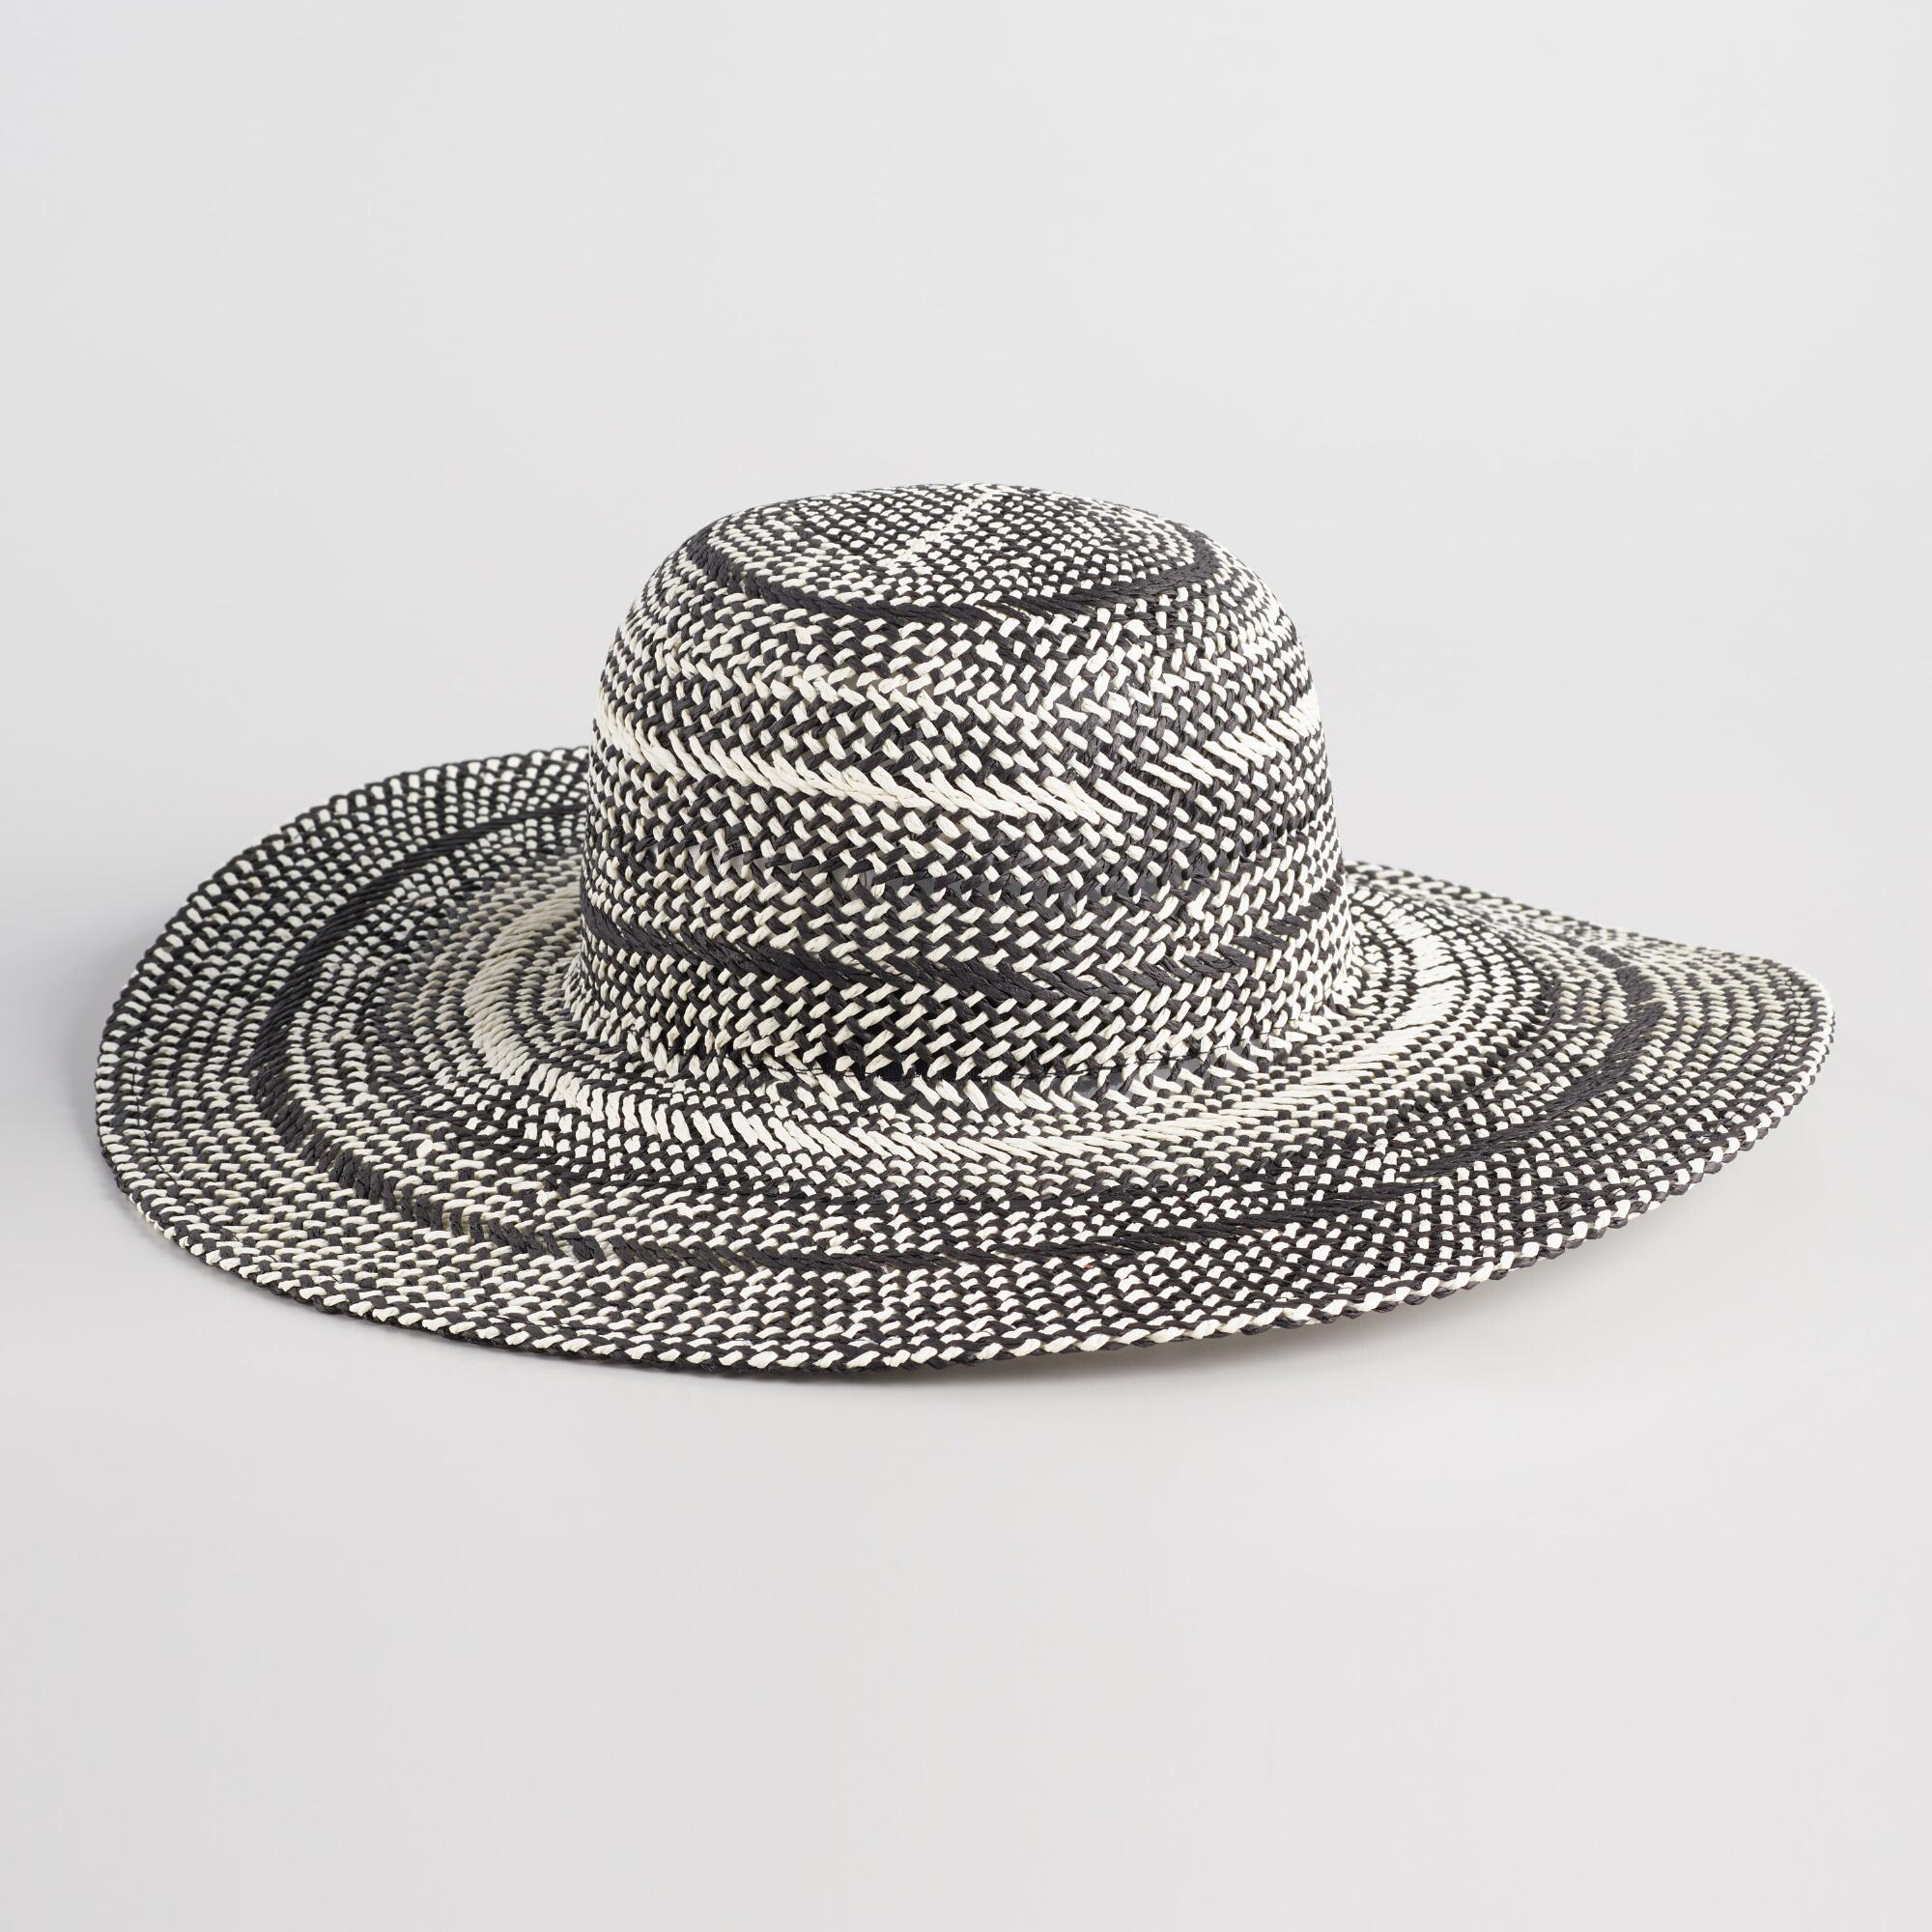 f25b9643176 Black And White Striped Sun Hat by World Market in 2018